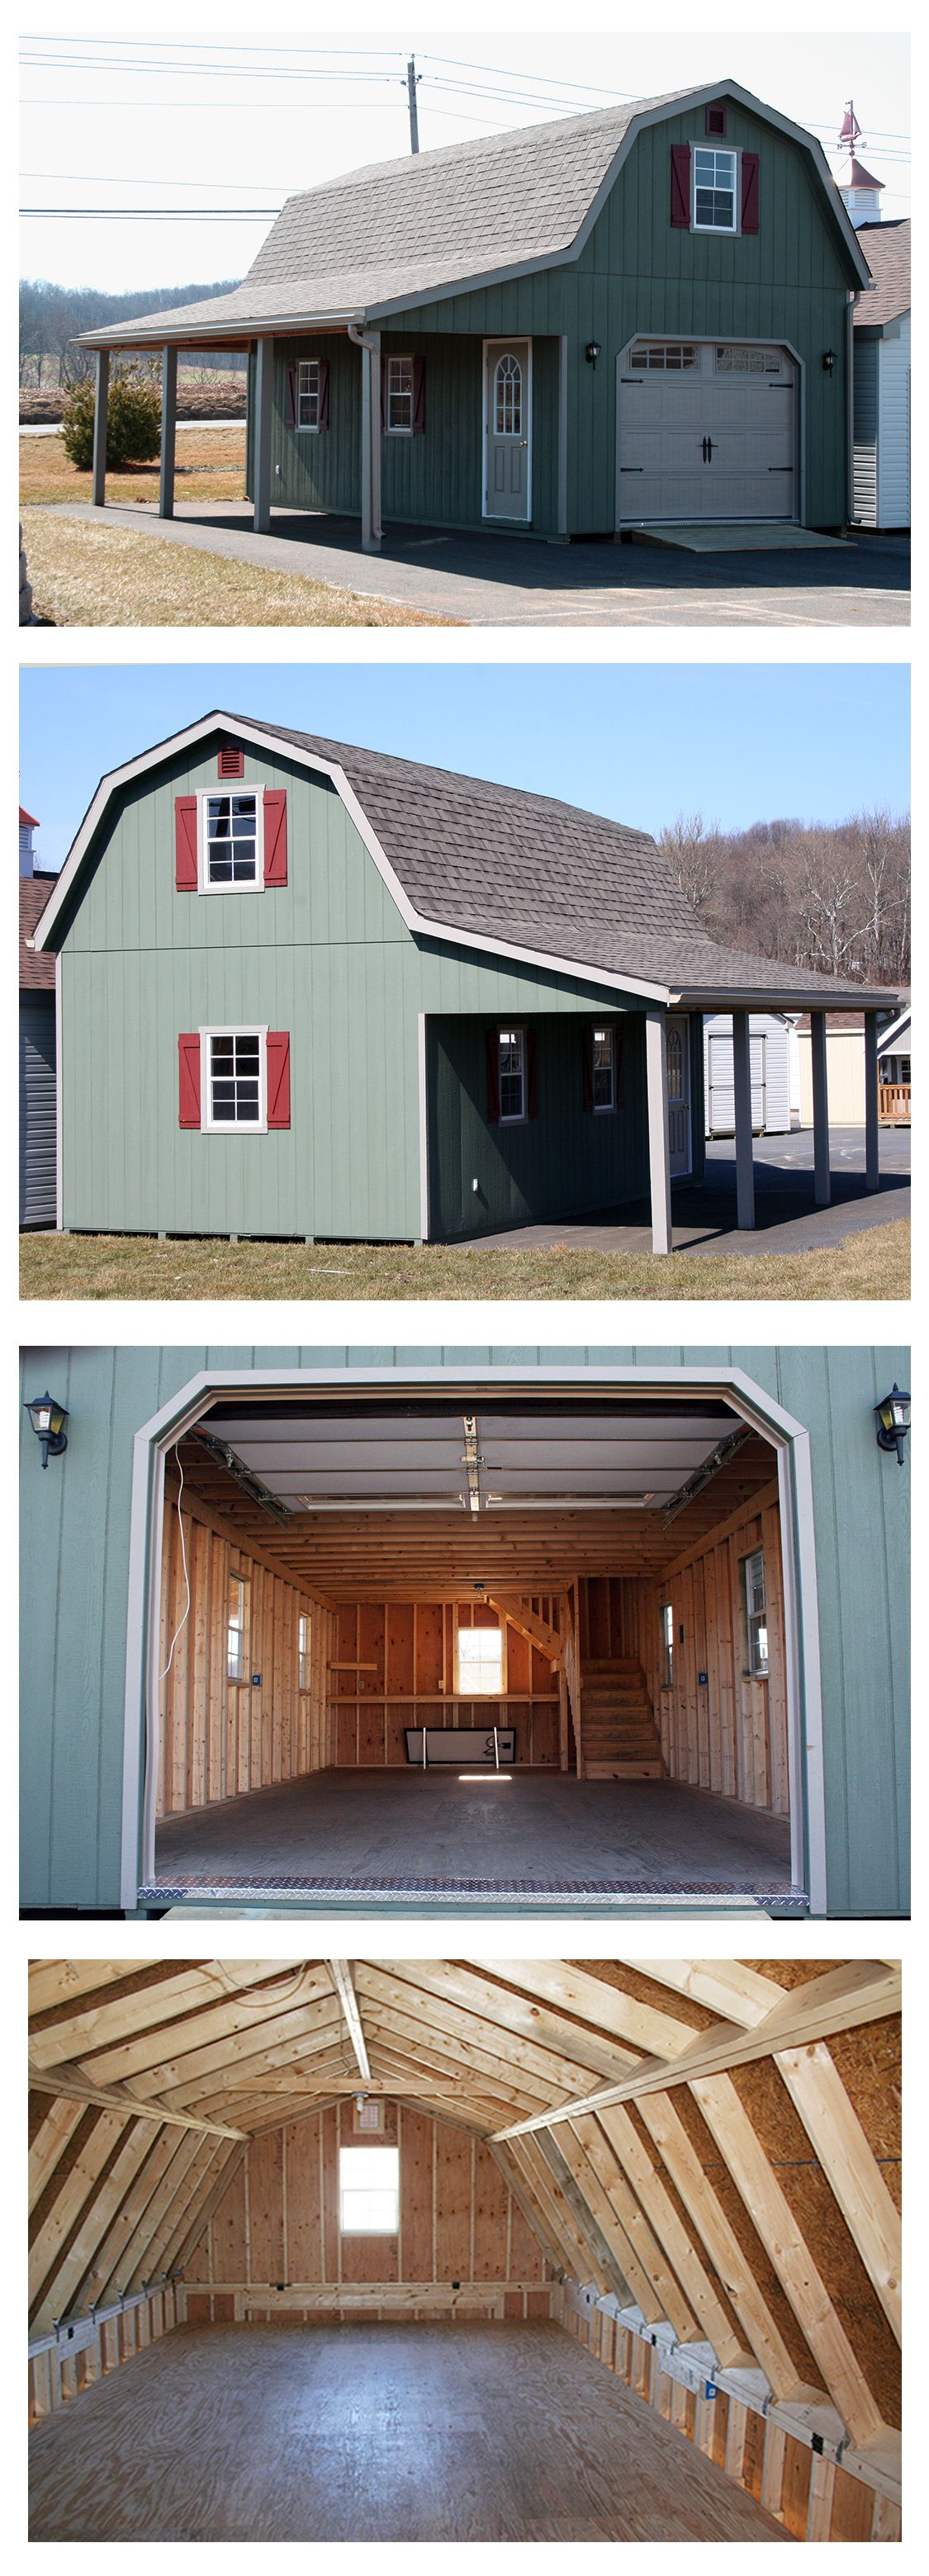 14 Wide X 28 Long With An 8 Overhang The Gambrel Barn Style Roof Maximizes Storage Space On The Upper Level Gambrel Barn Prefab Garages House Plans